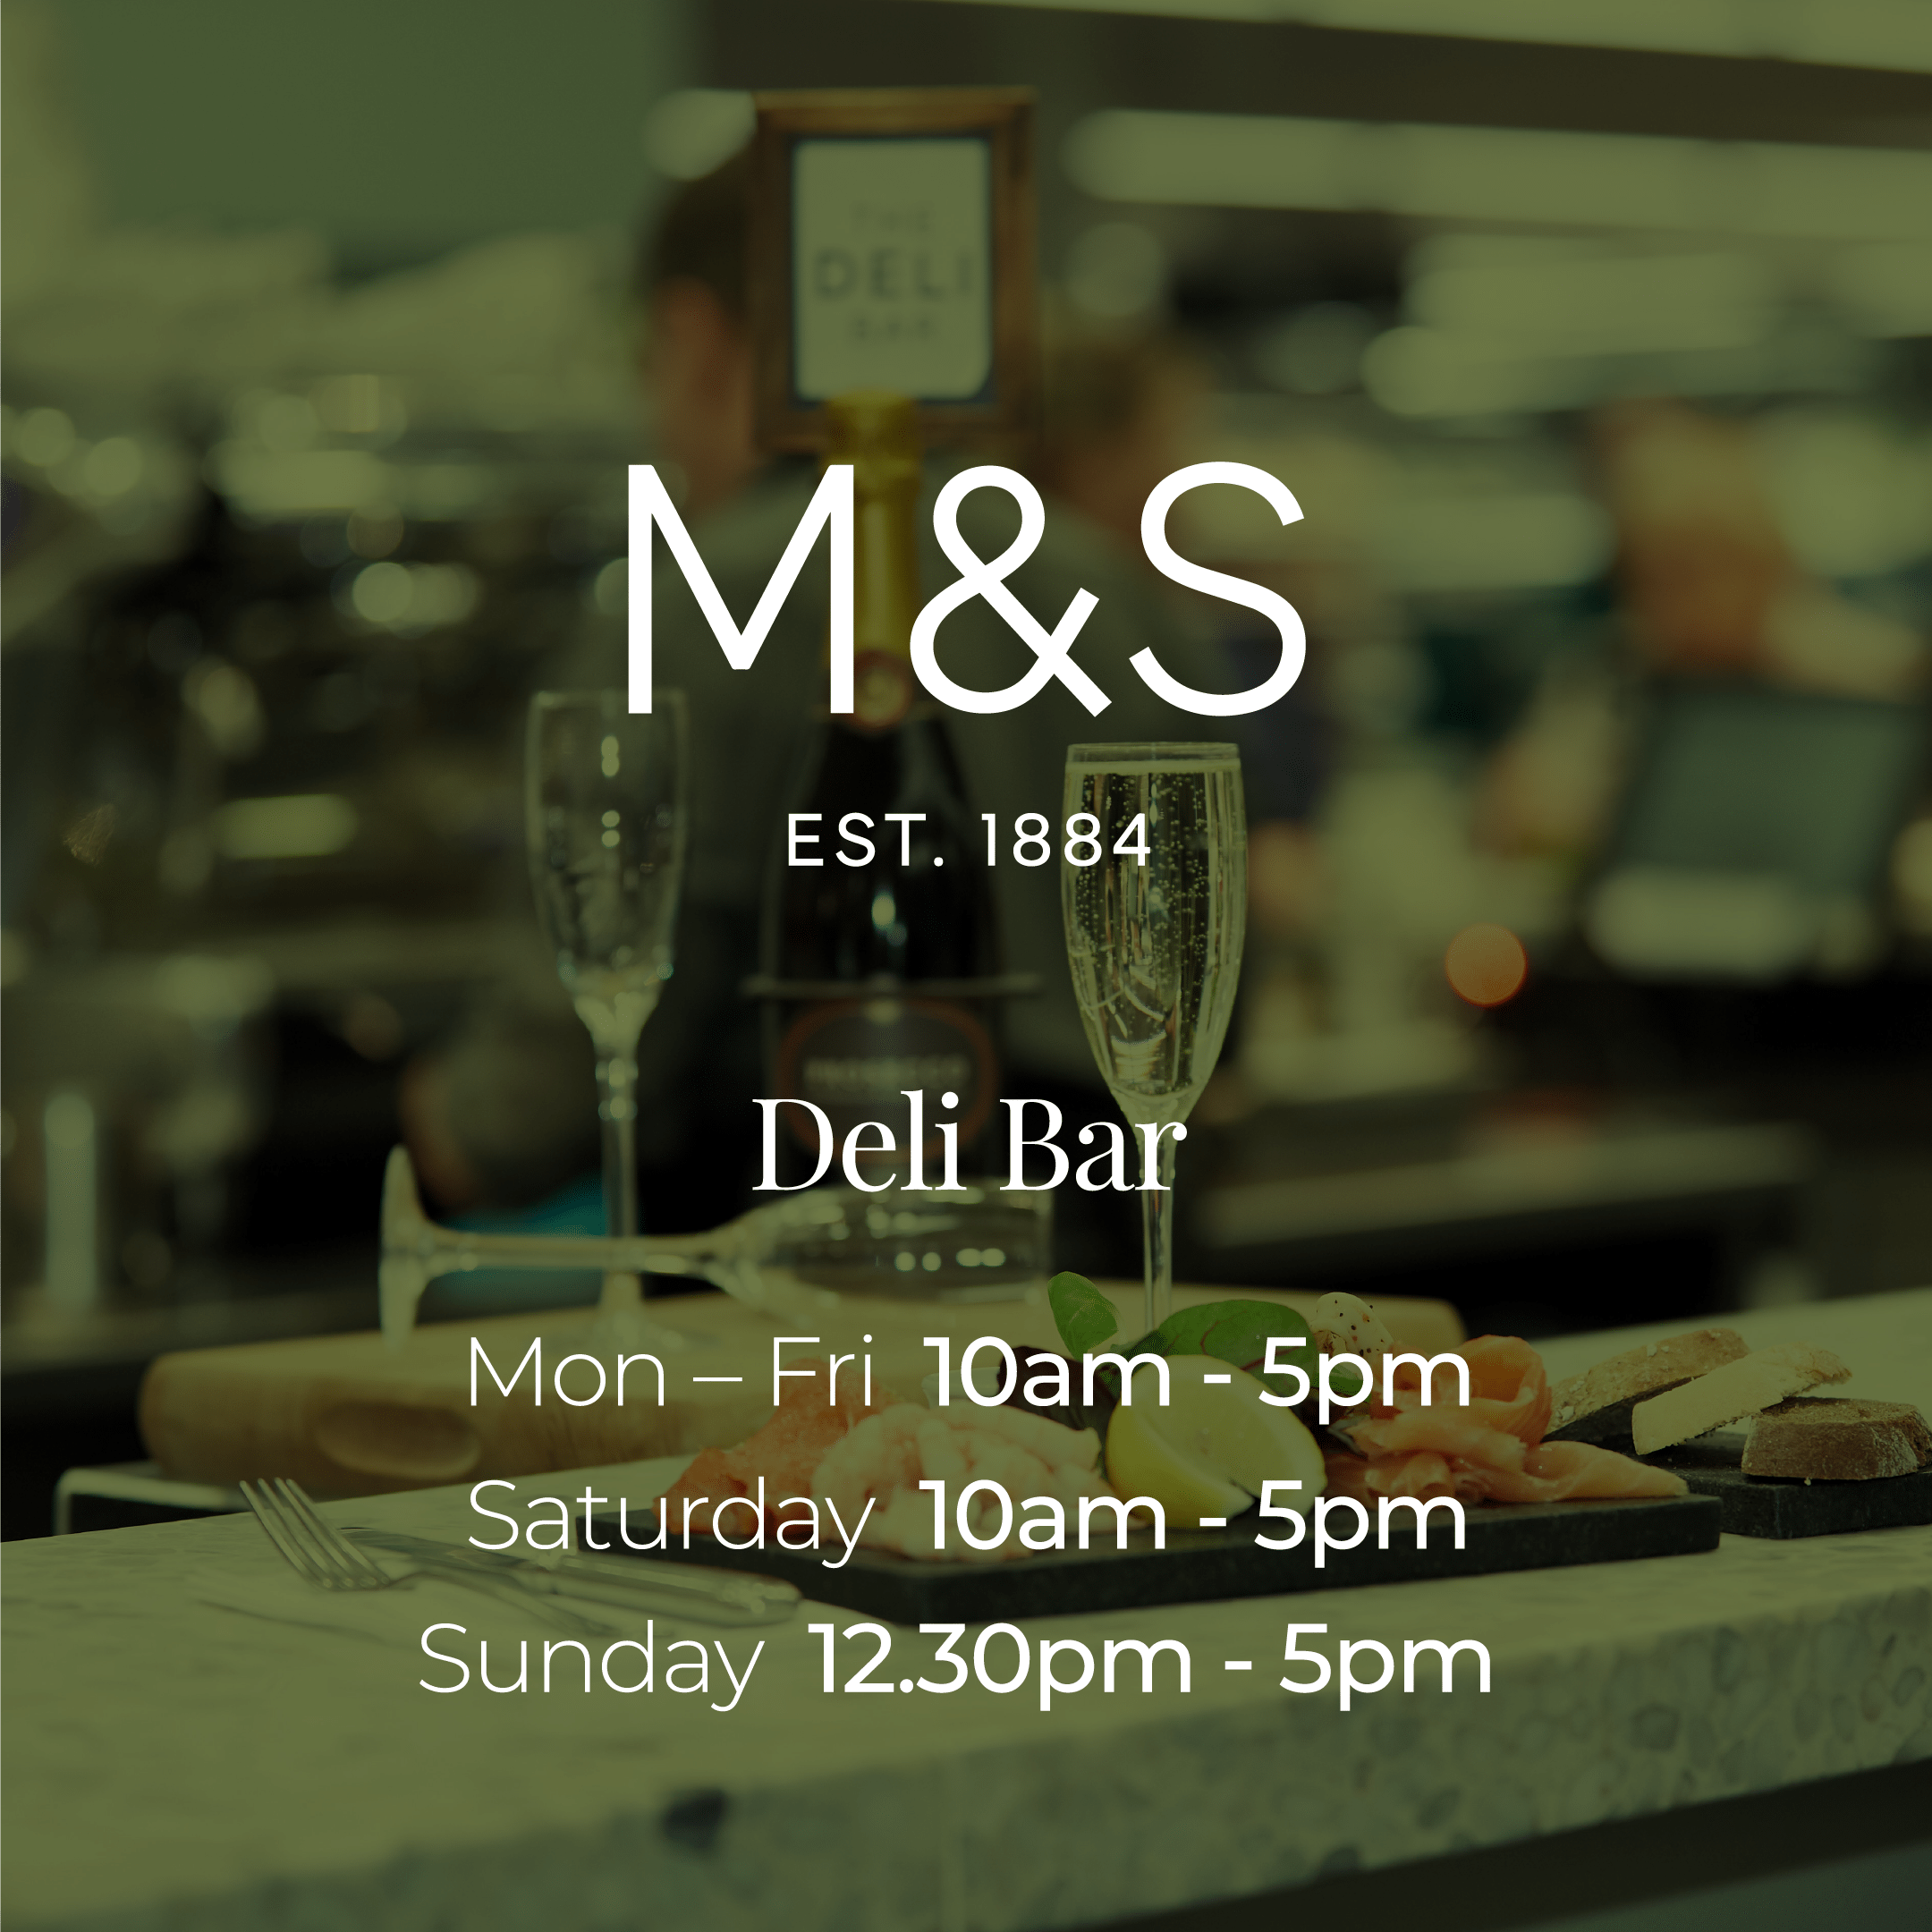 M&S Deli Bar Opening Hours